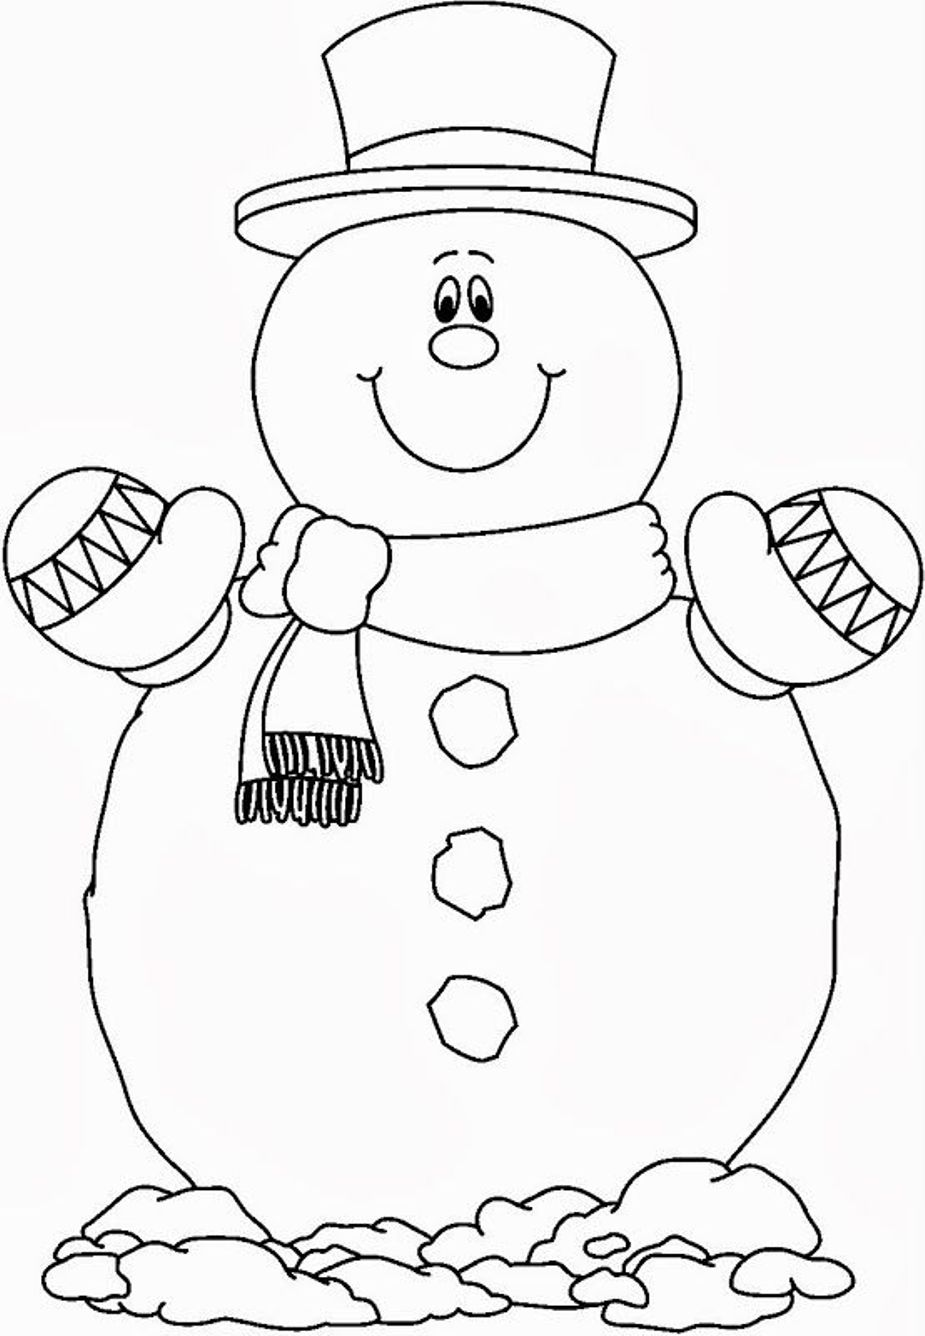 Amazing Pictures Of Snowmen To Color 18  444